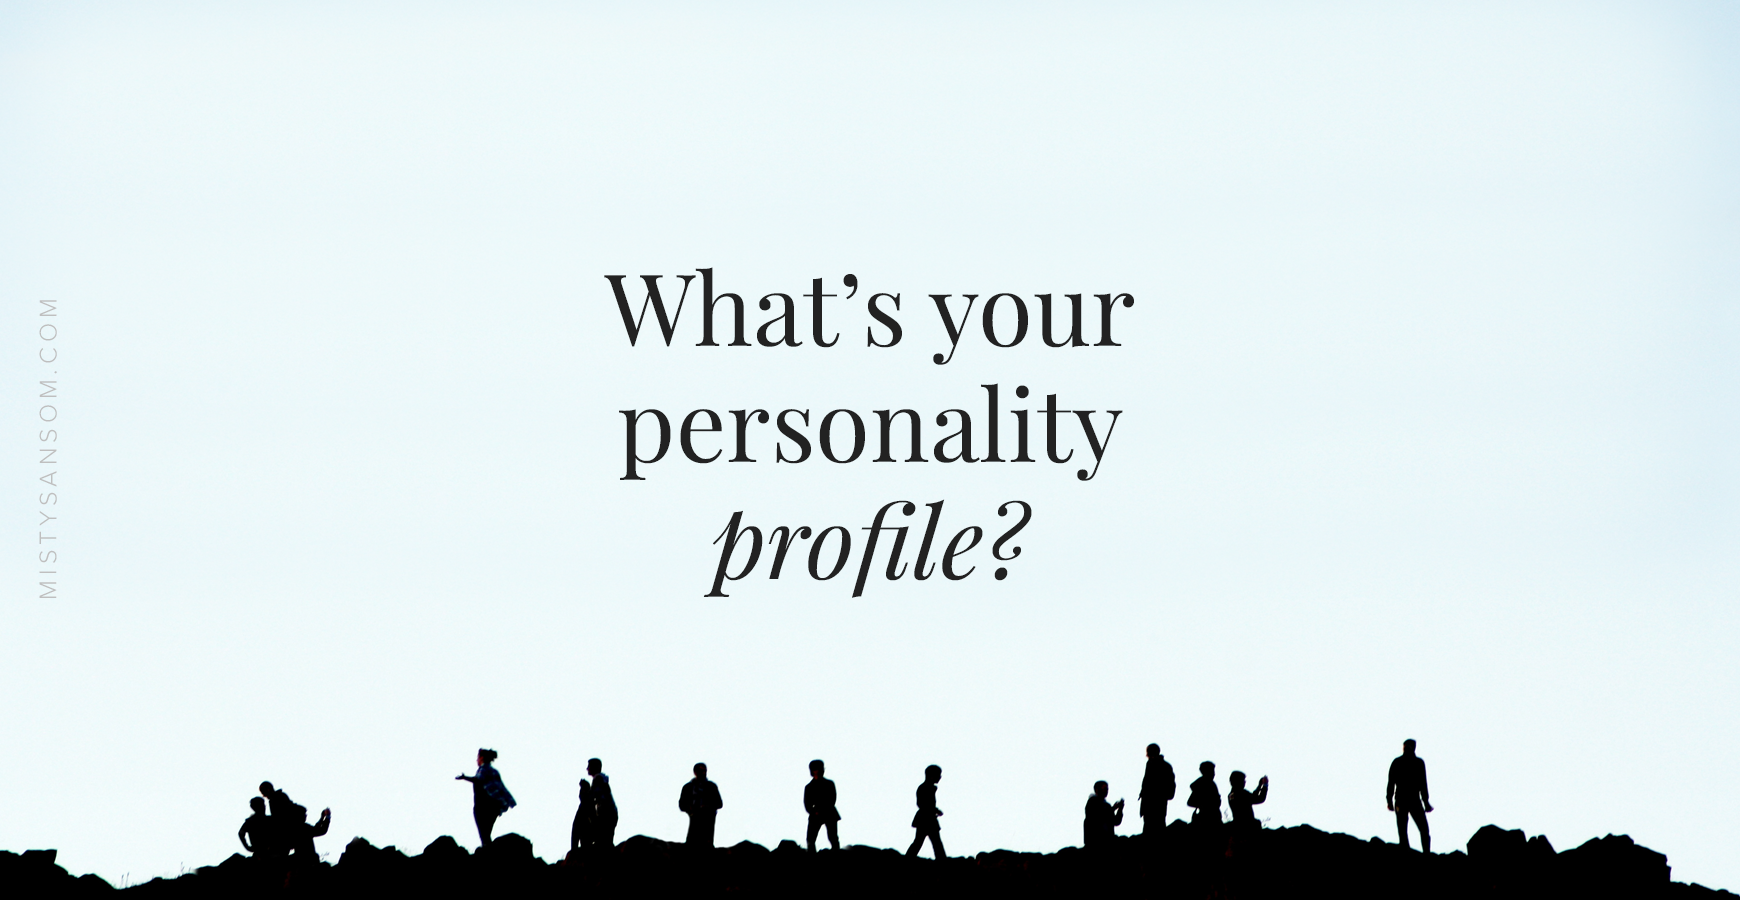 What's-your-personality-profile-.png